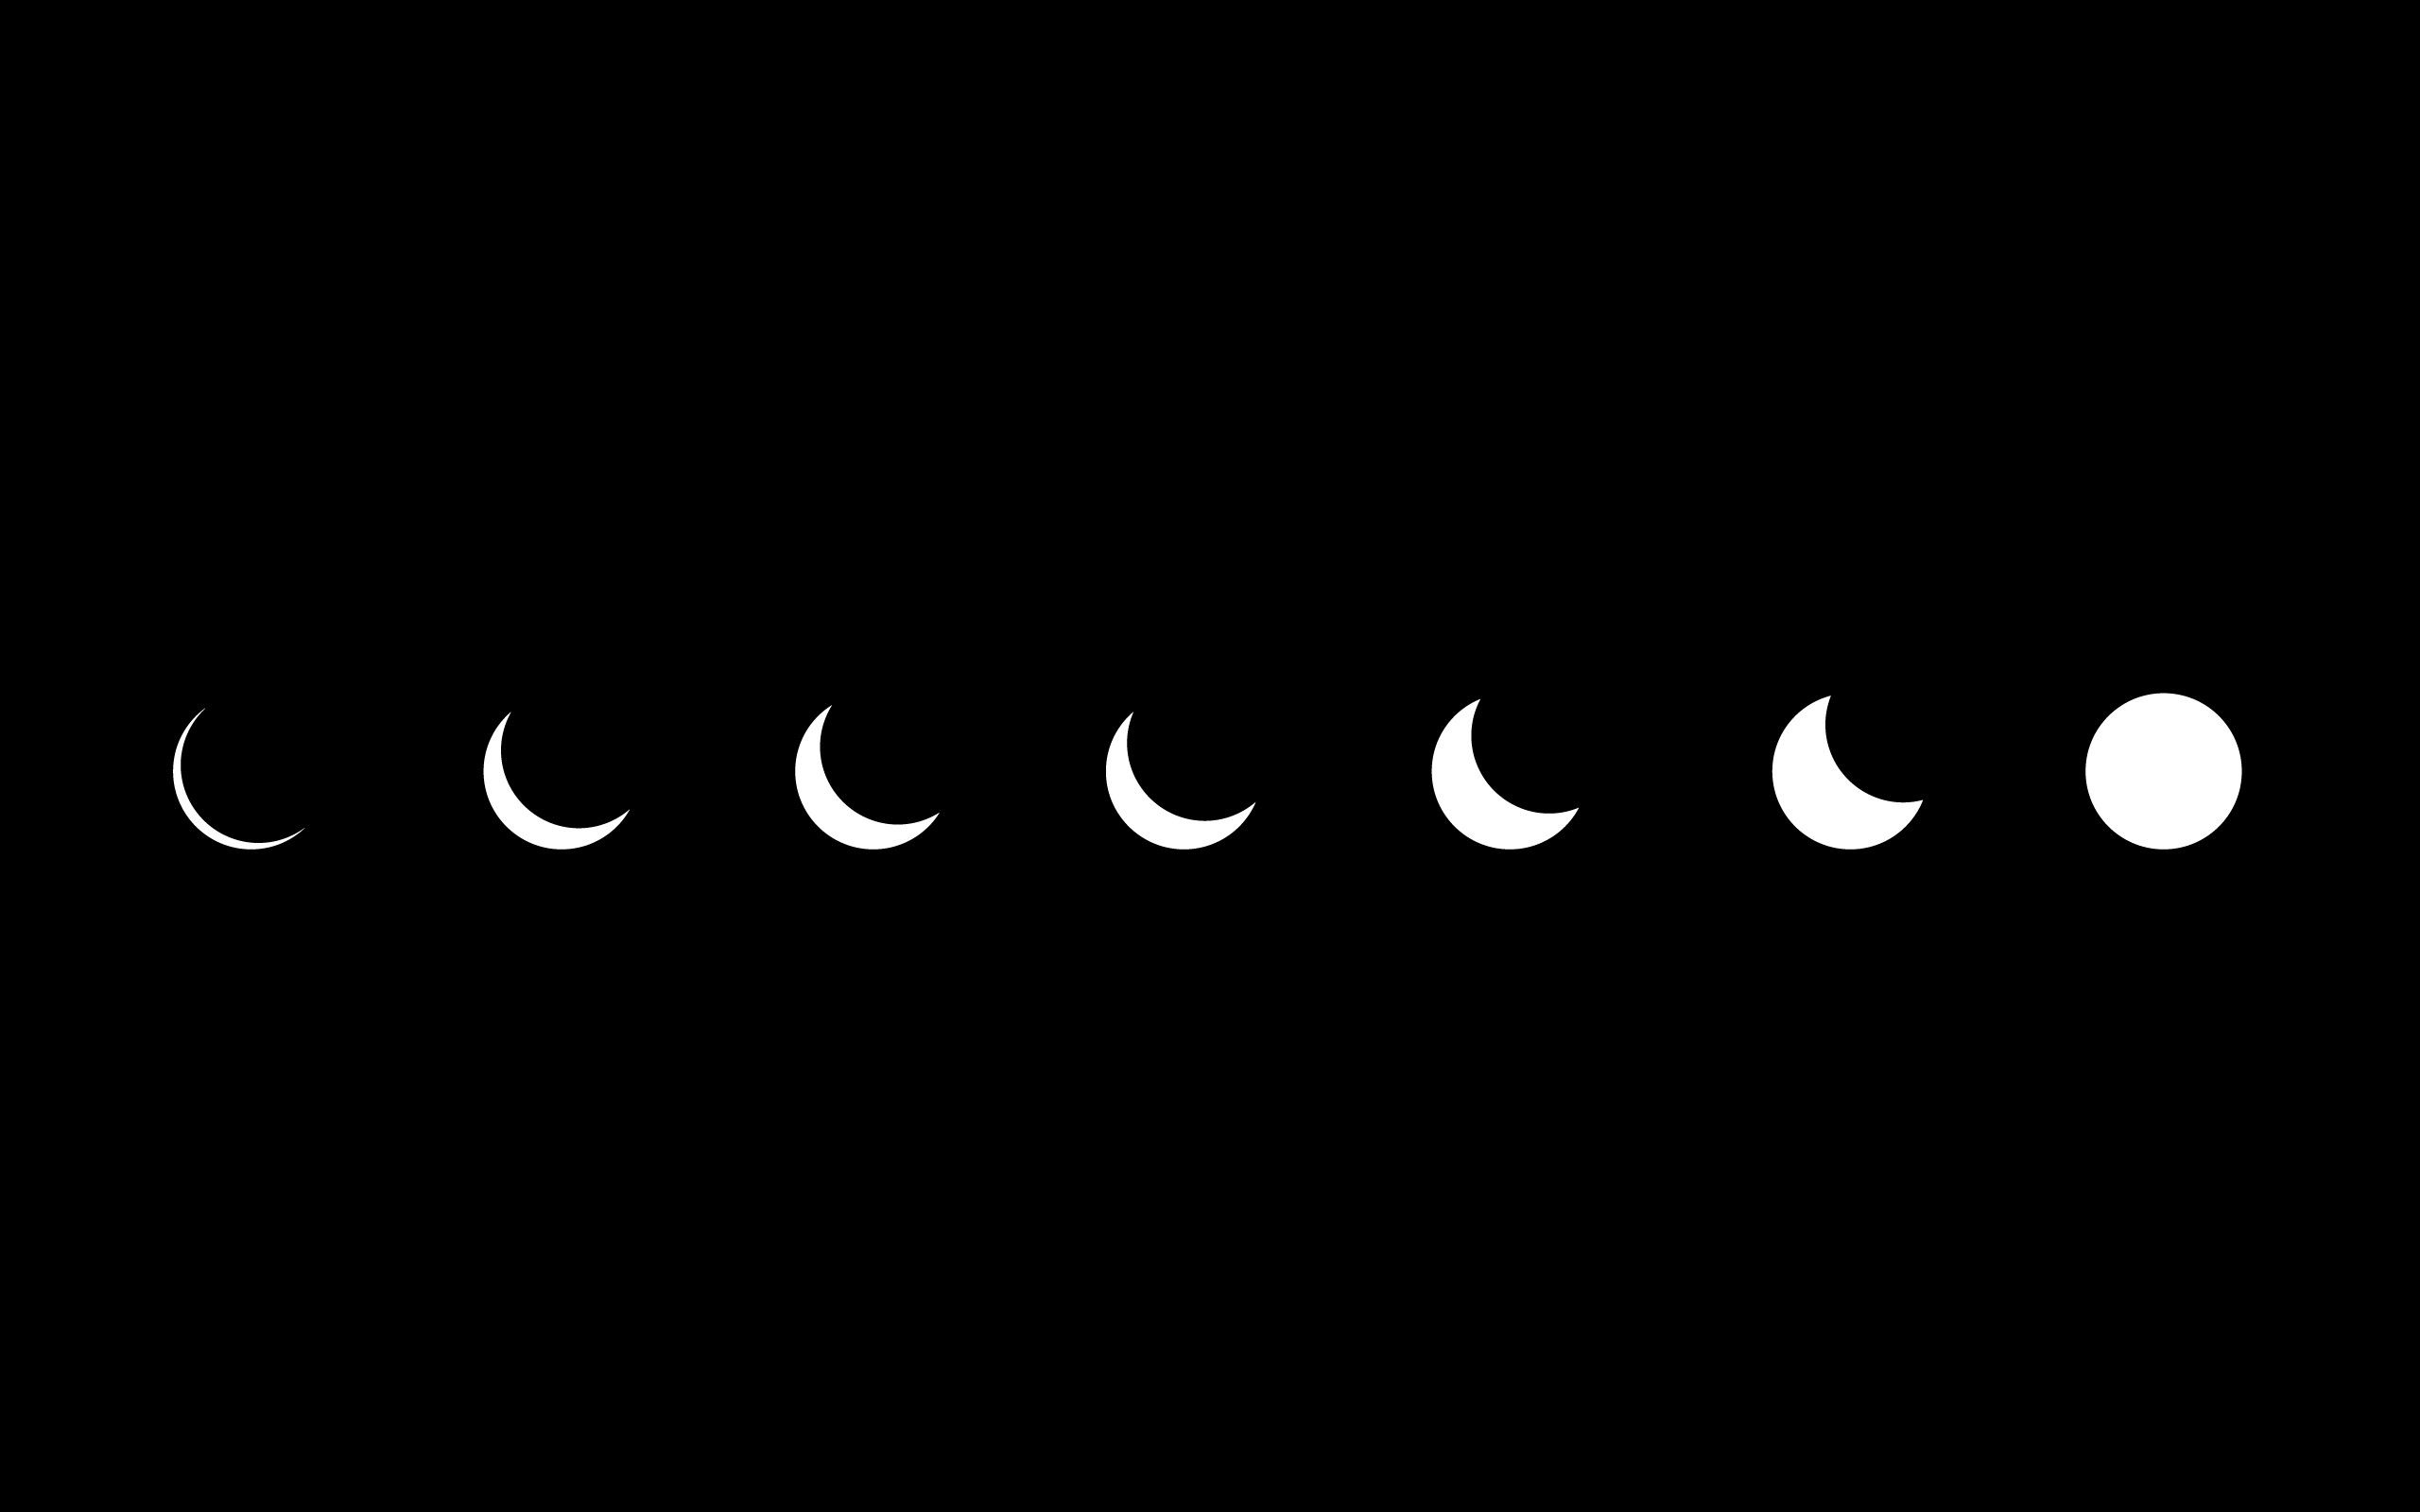 High Resolution Minimalistic Eclipse Artwork Simple HD Wallpaper 2560x1600